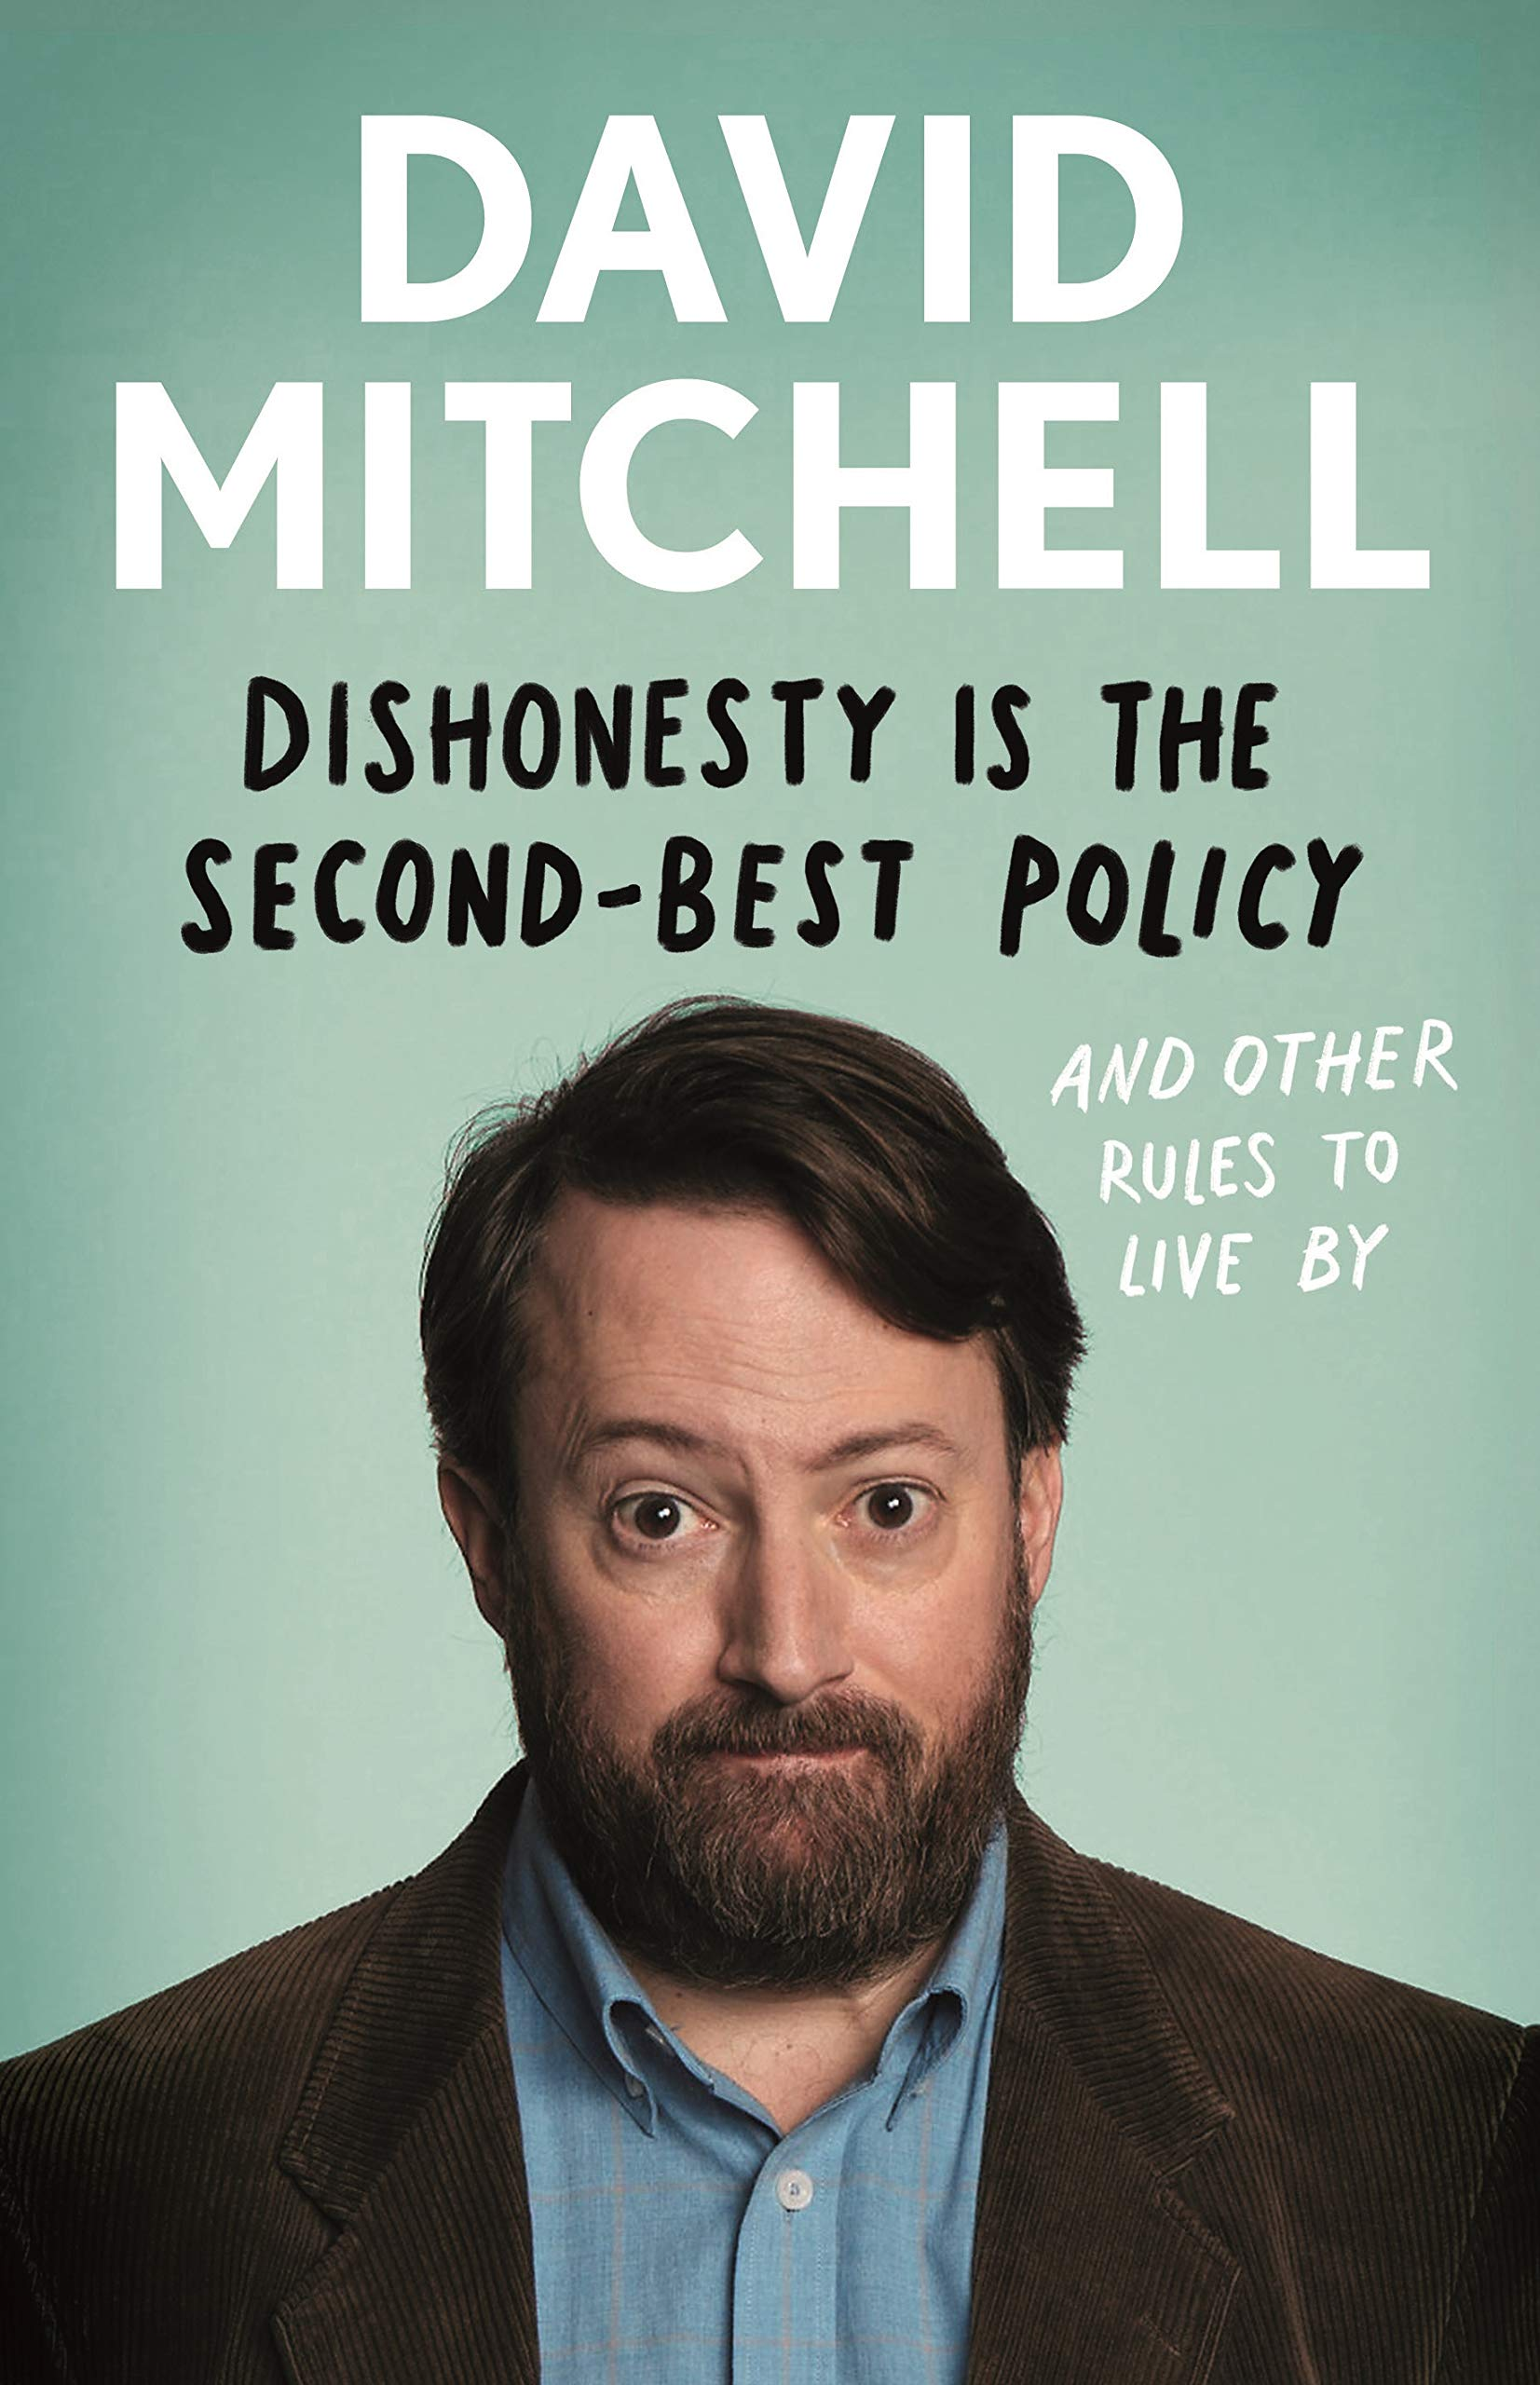 Dishonesty is the Second-Best Policy: And Other Rules to Live By:  Amazon.co.uk: Mitchell, David: 9781783351961: Books